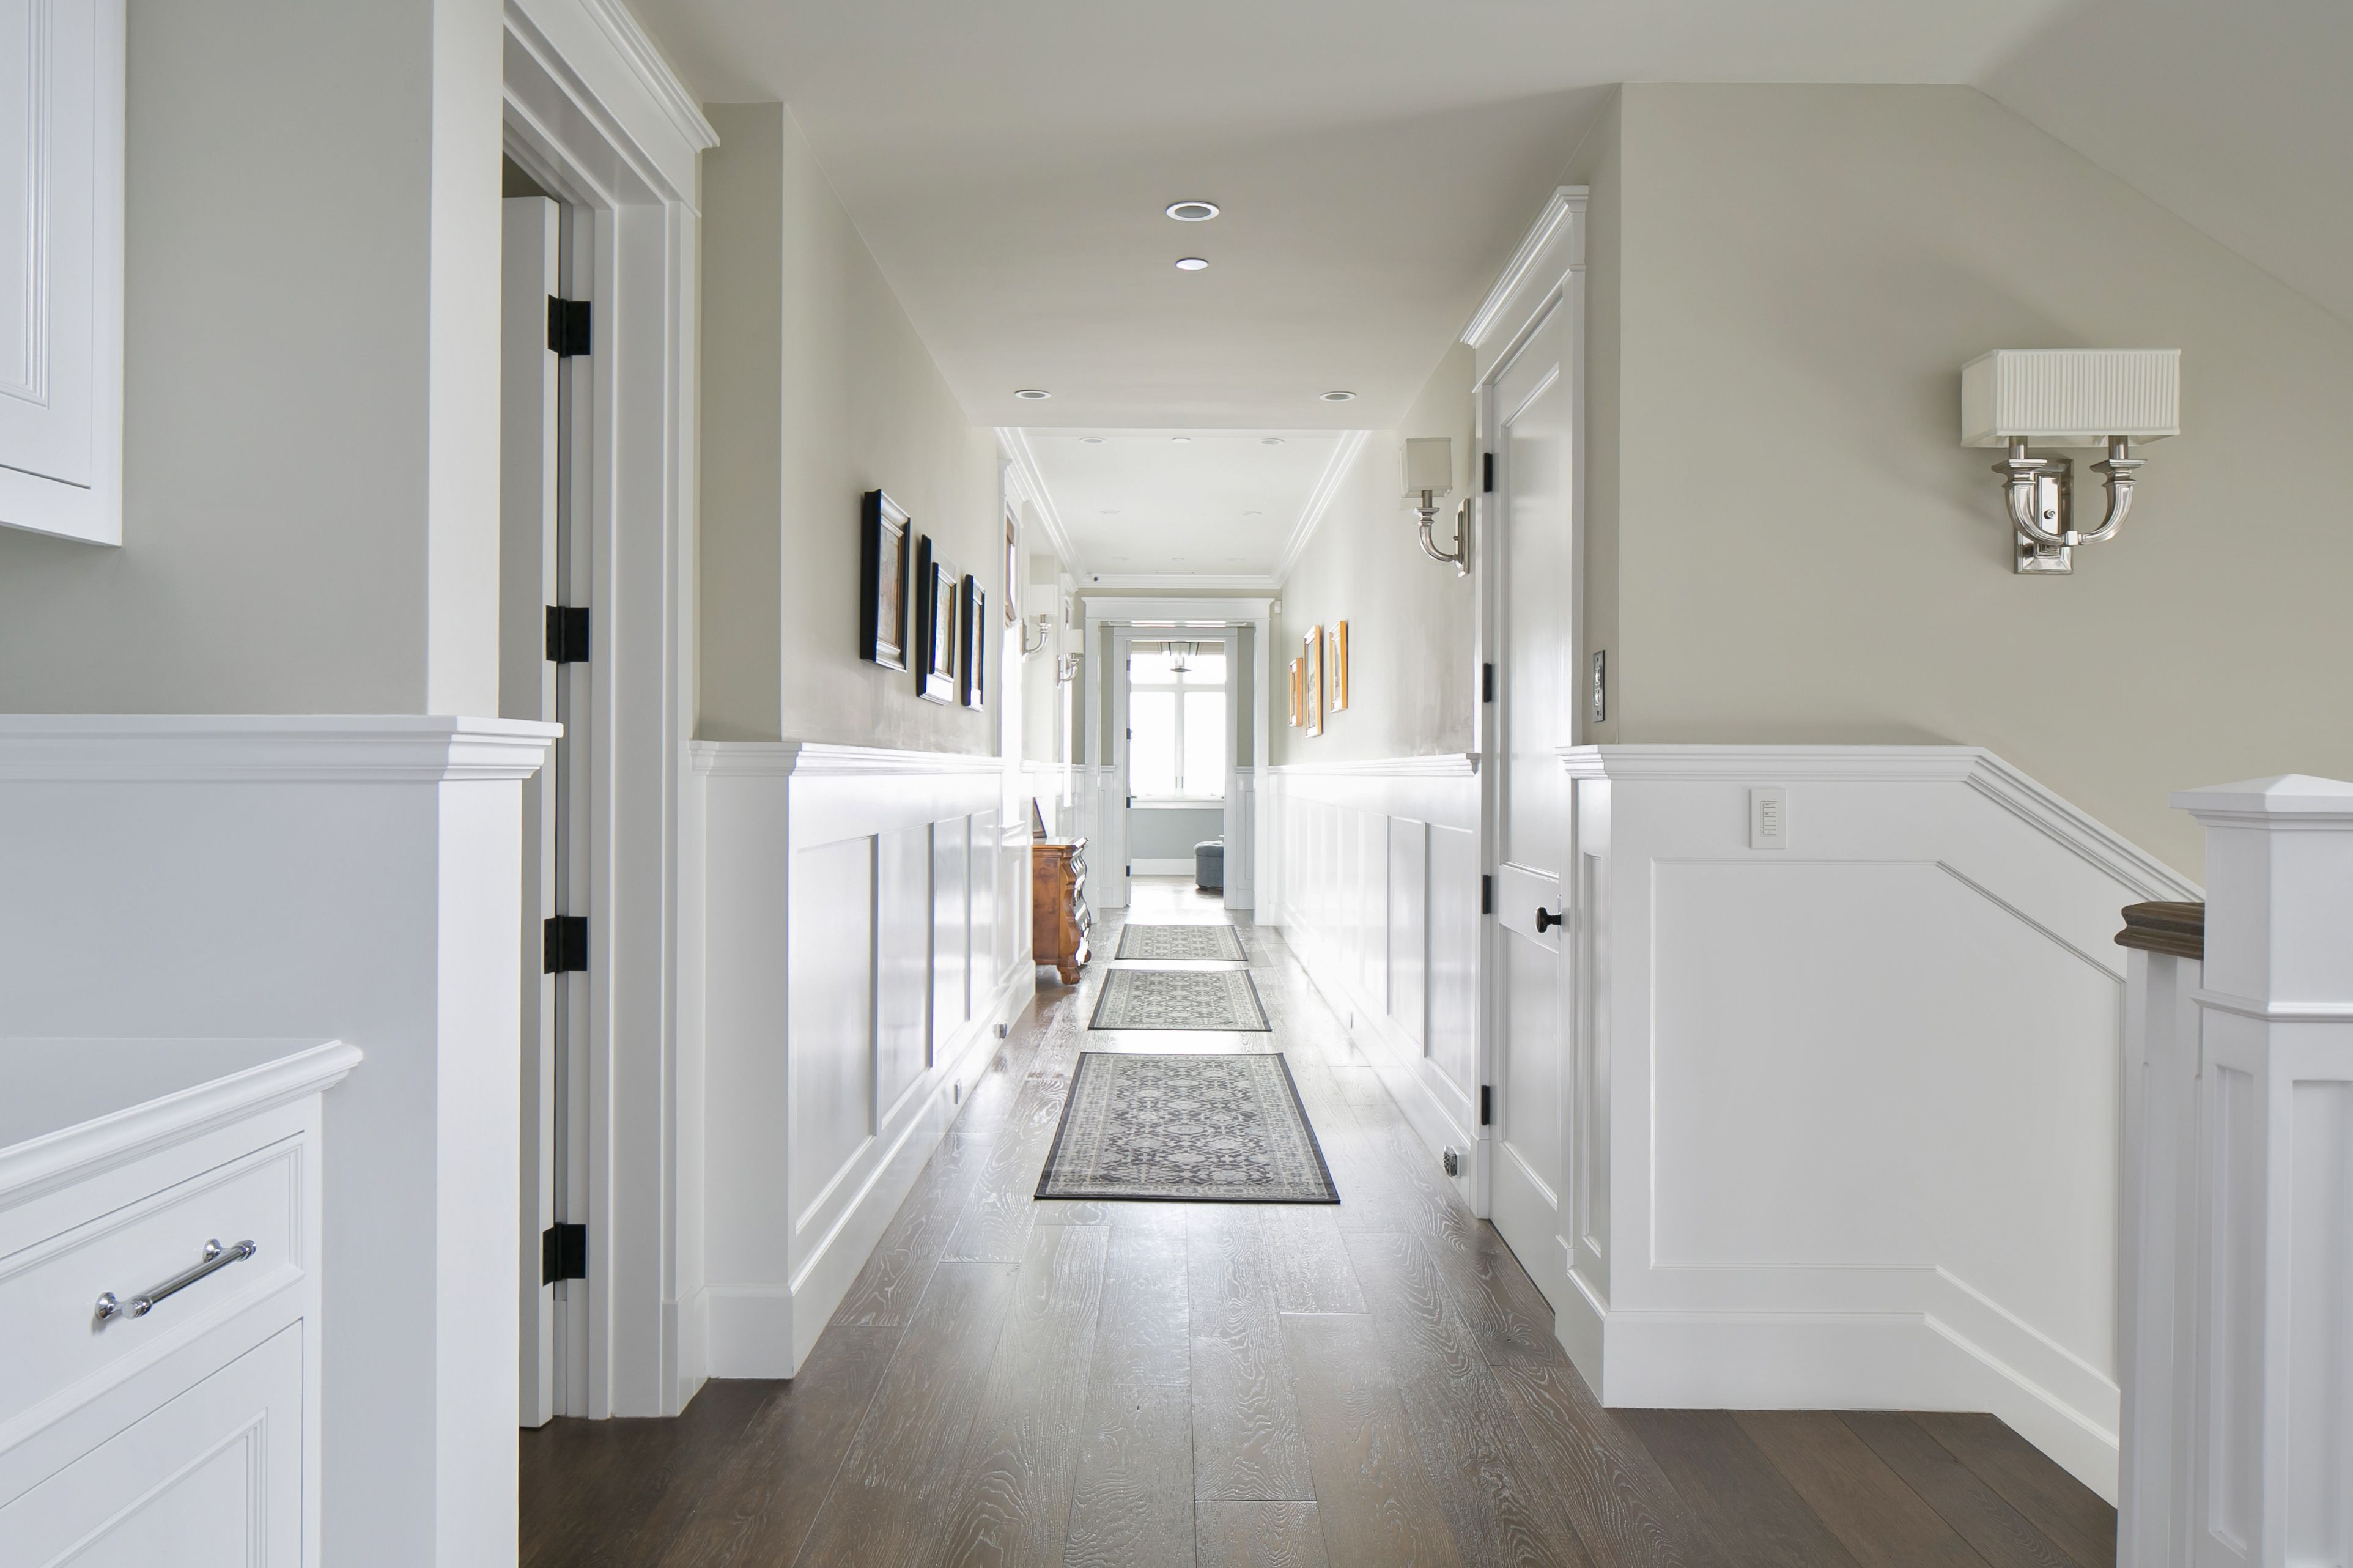 We Love The Color Of These Walls The Wainscoting Adds A Brilliant Contrast To The Paint Color And Wainscoting Styles Dining Room Wainscoting White Wainscoting